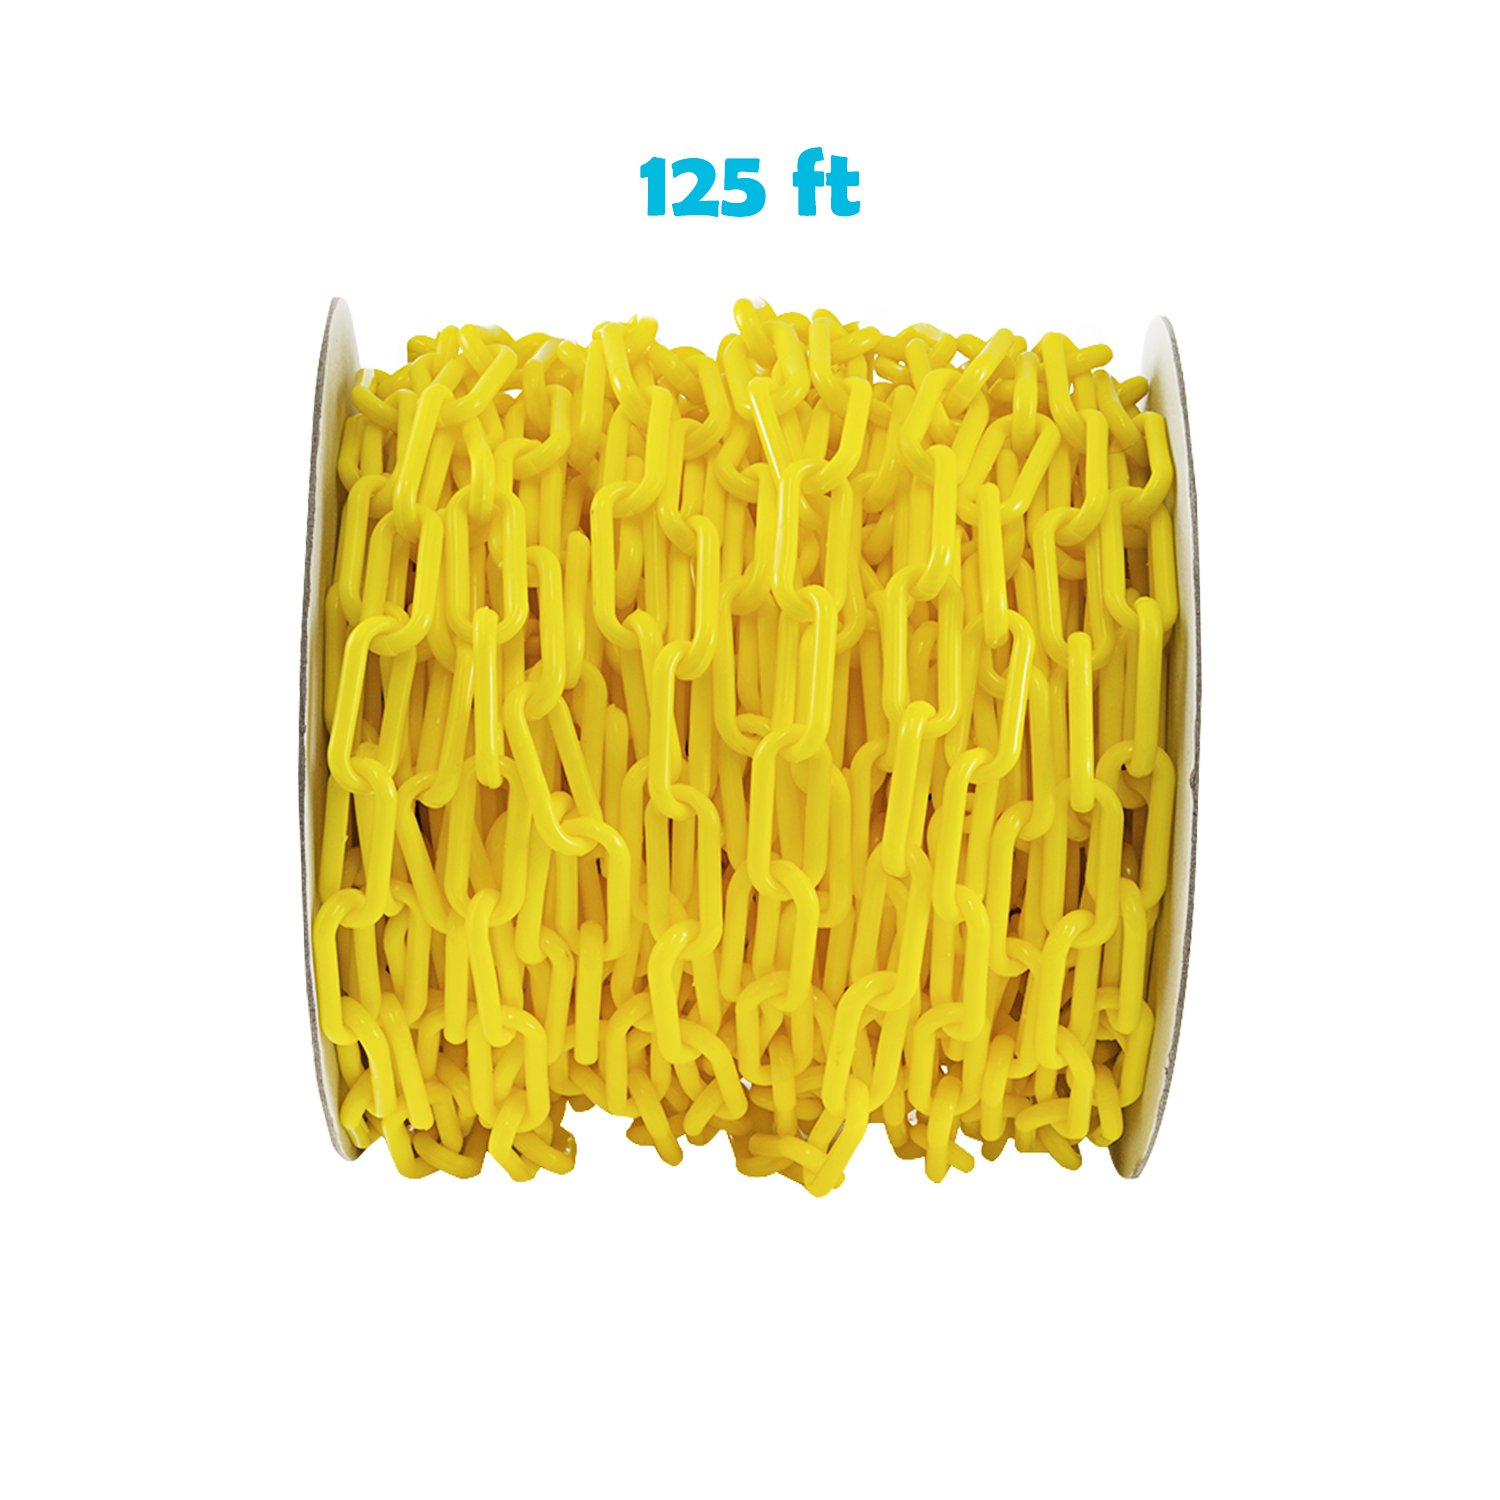 barricade chain manufacturer plastic chains